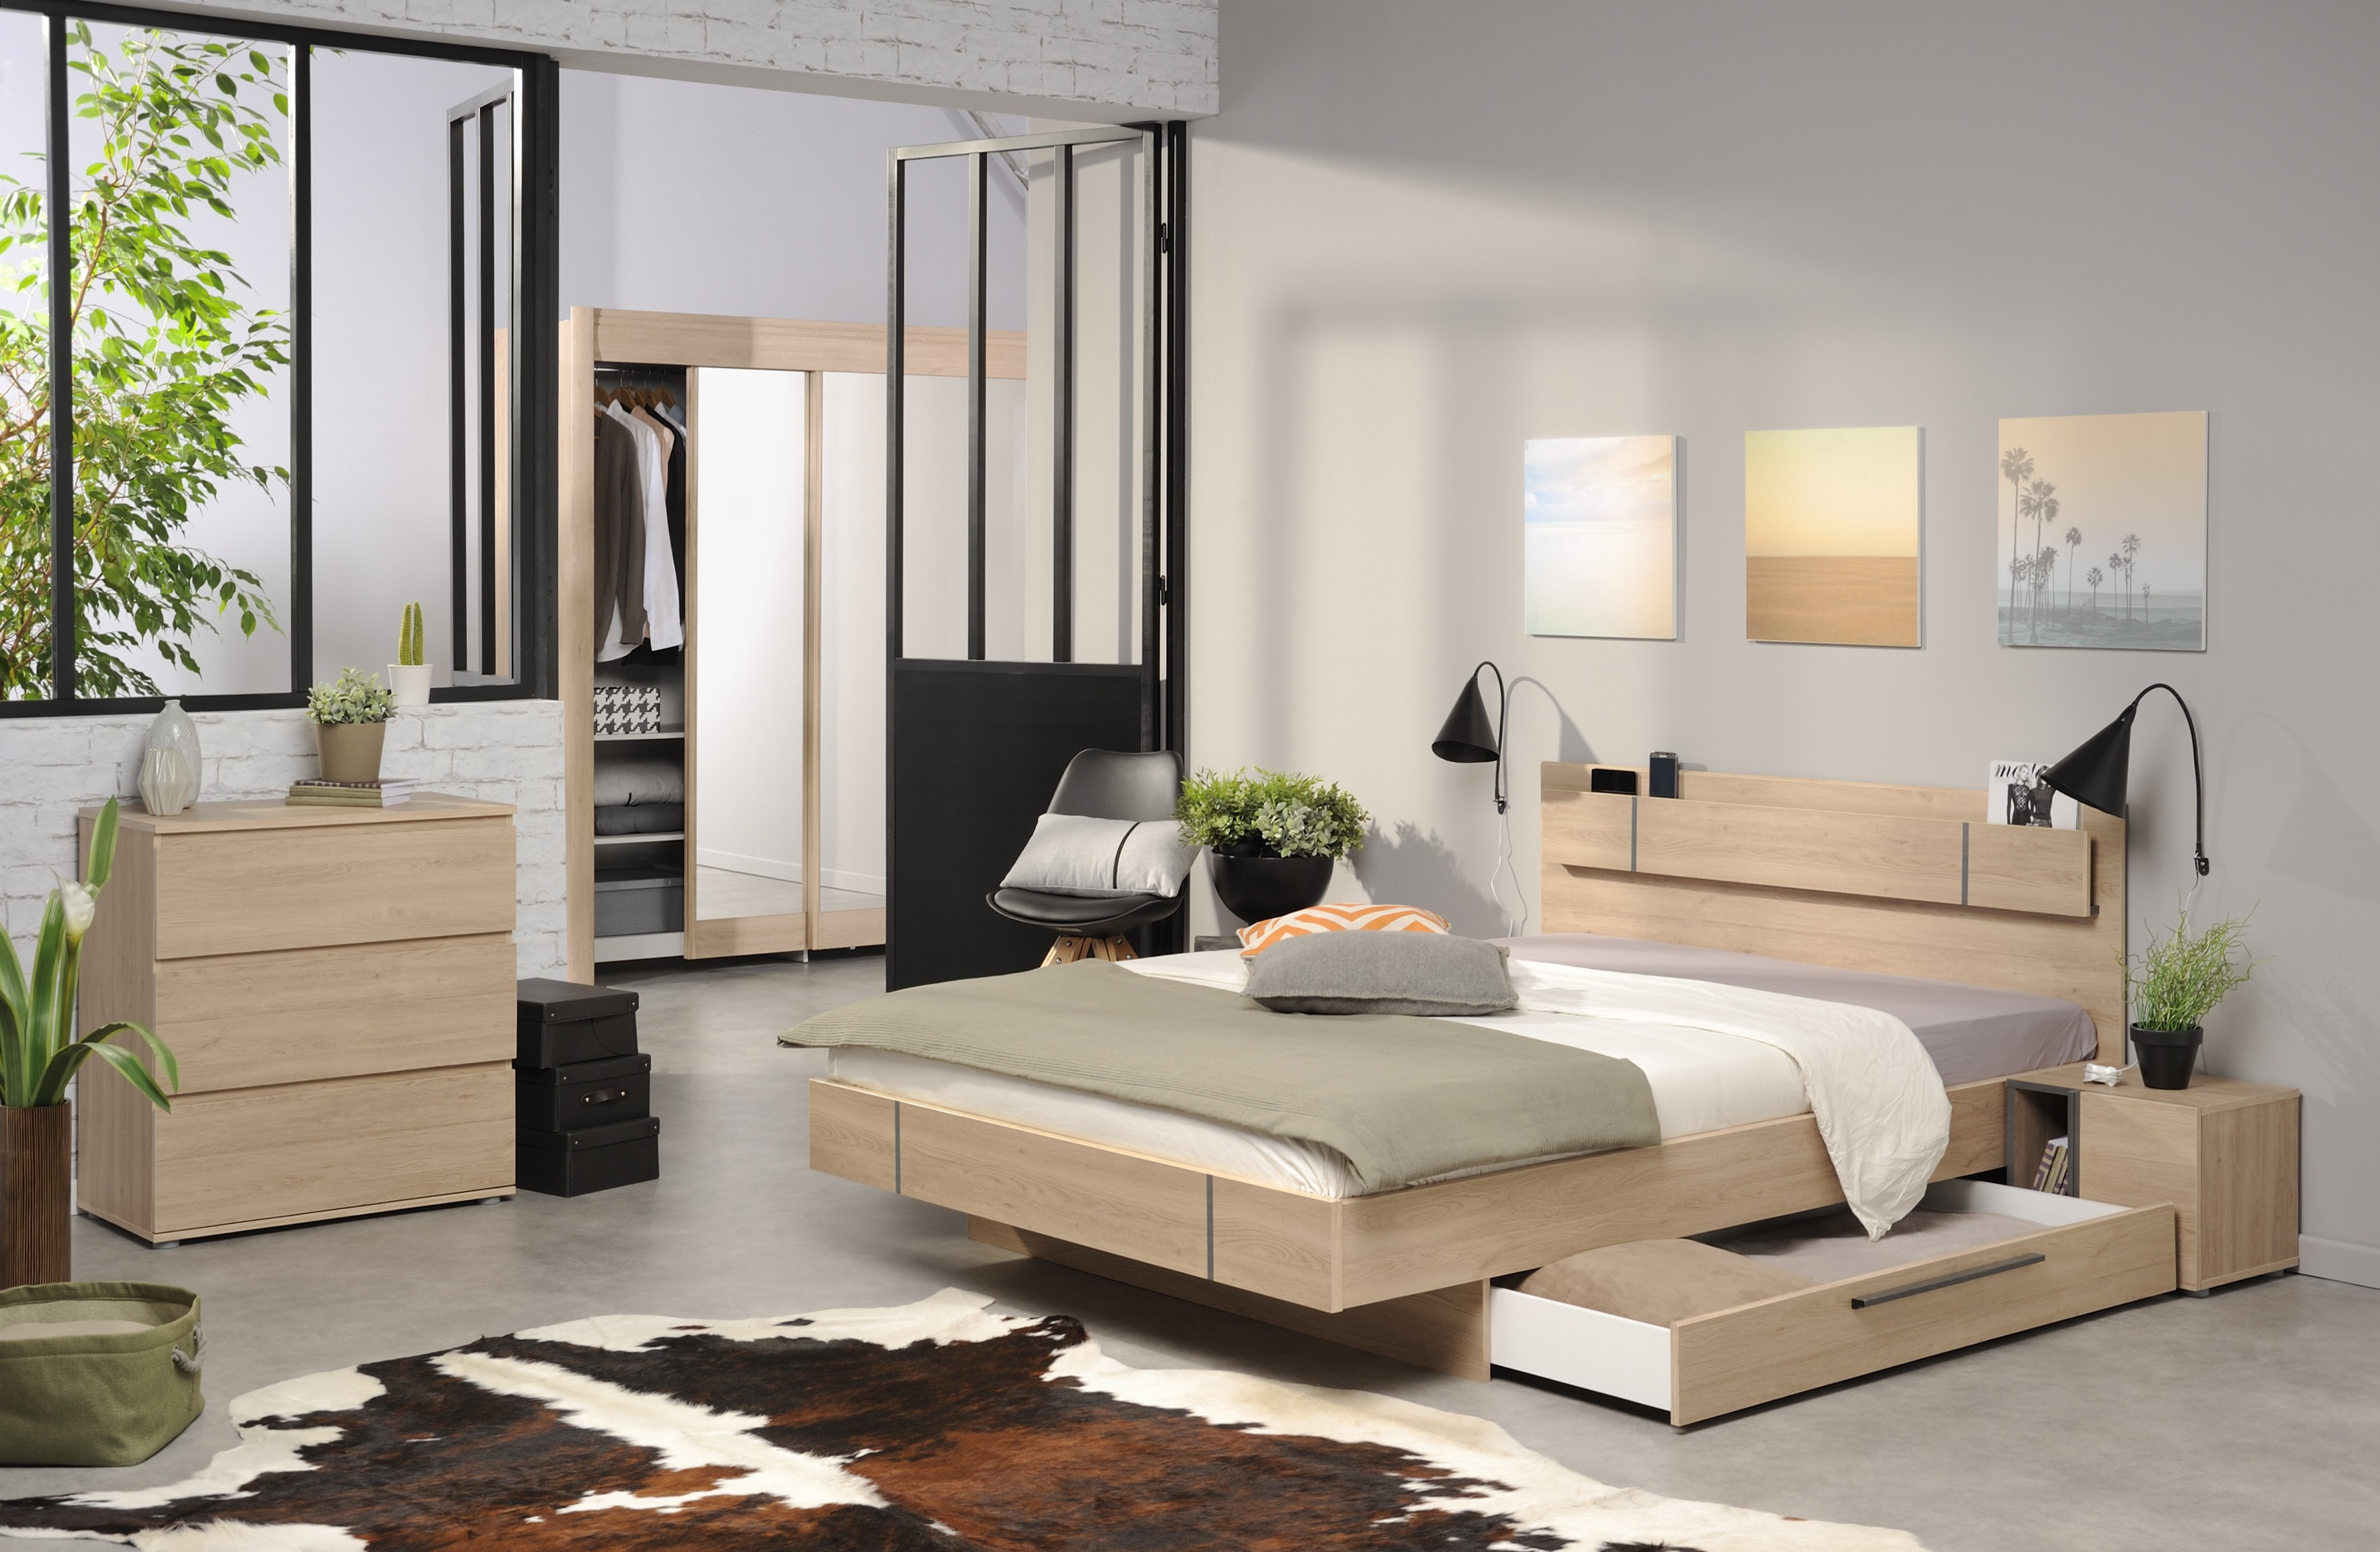 Chambre moderne compl te martina for Meuble chambre complete